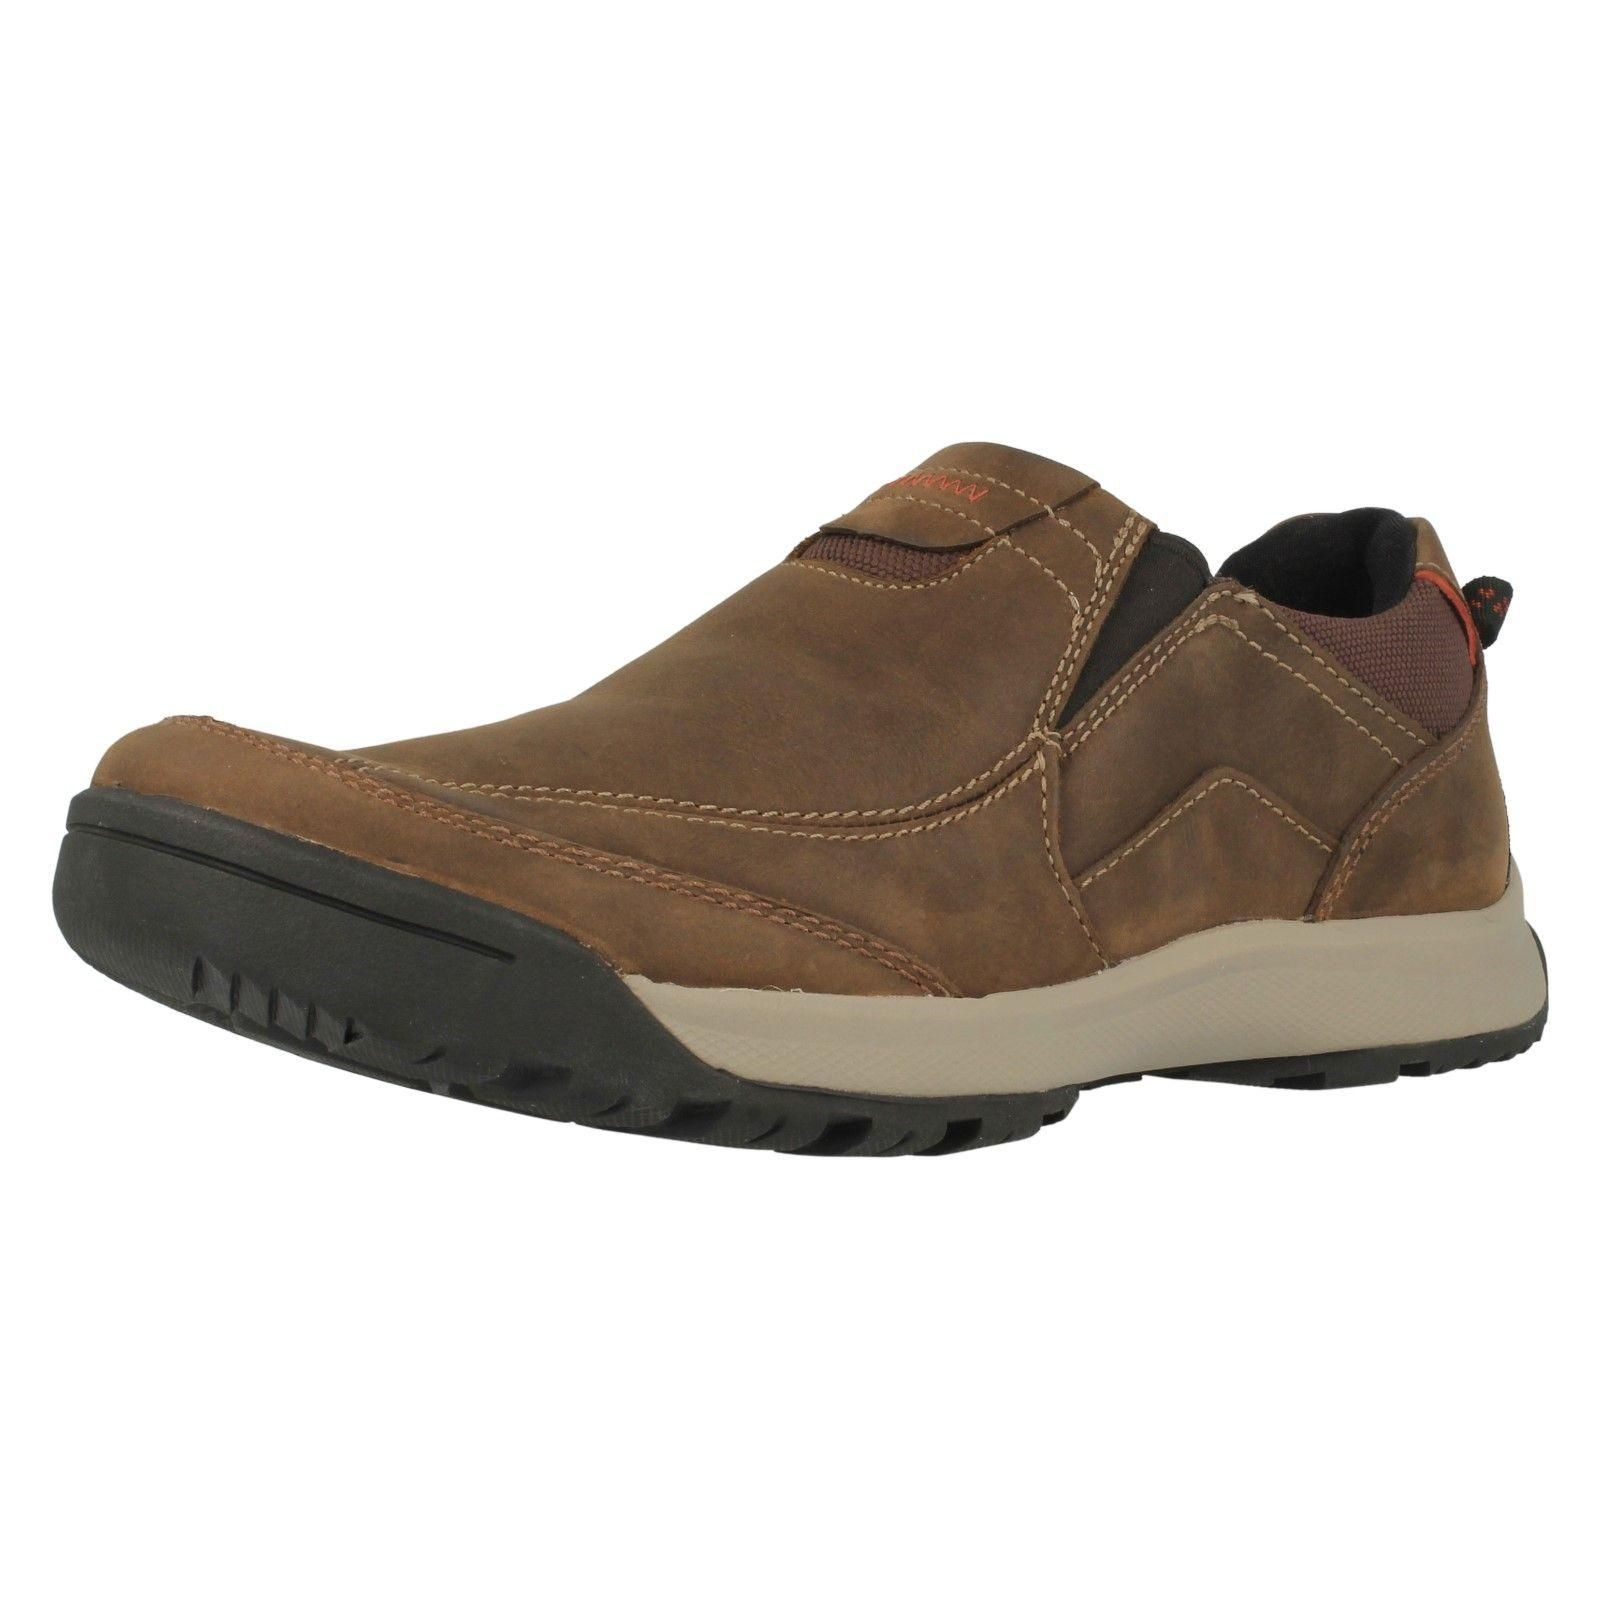 Clarks Shoes Holiday Sale: Save up to 65% off on Clarks Shoes, boots, and sandals for men, women, and kids at the askreservations.ml Clarks Outlet! Over styles available. FREE Shipping and Exchanges, and a % price guarantee.